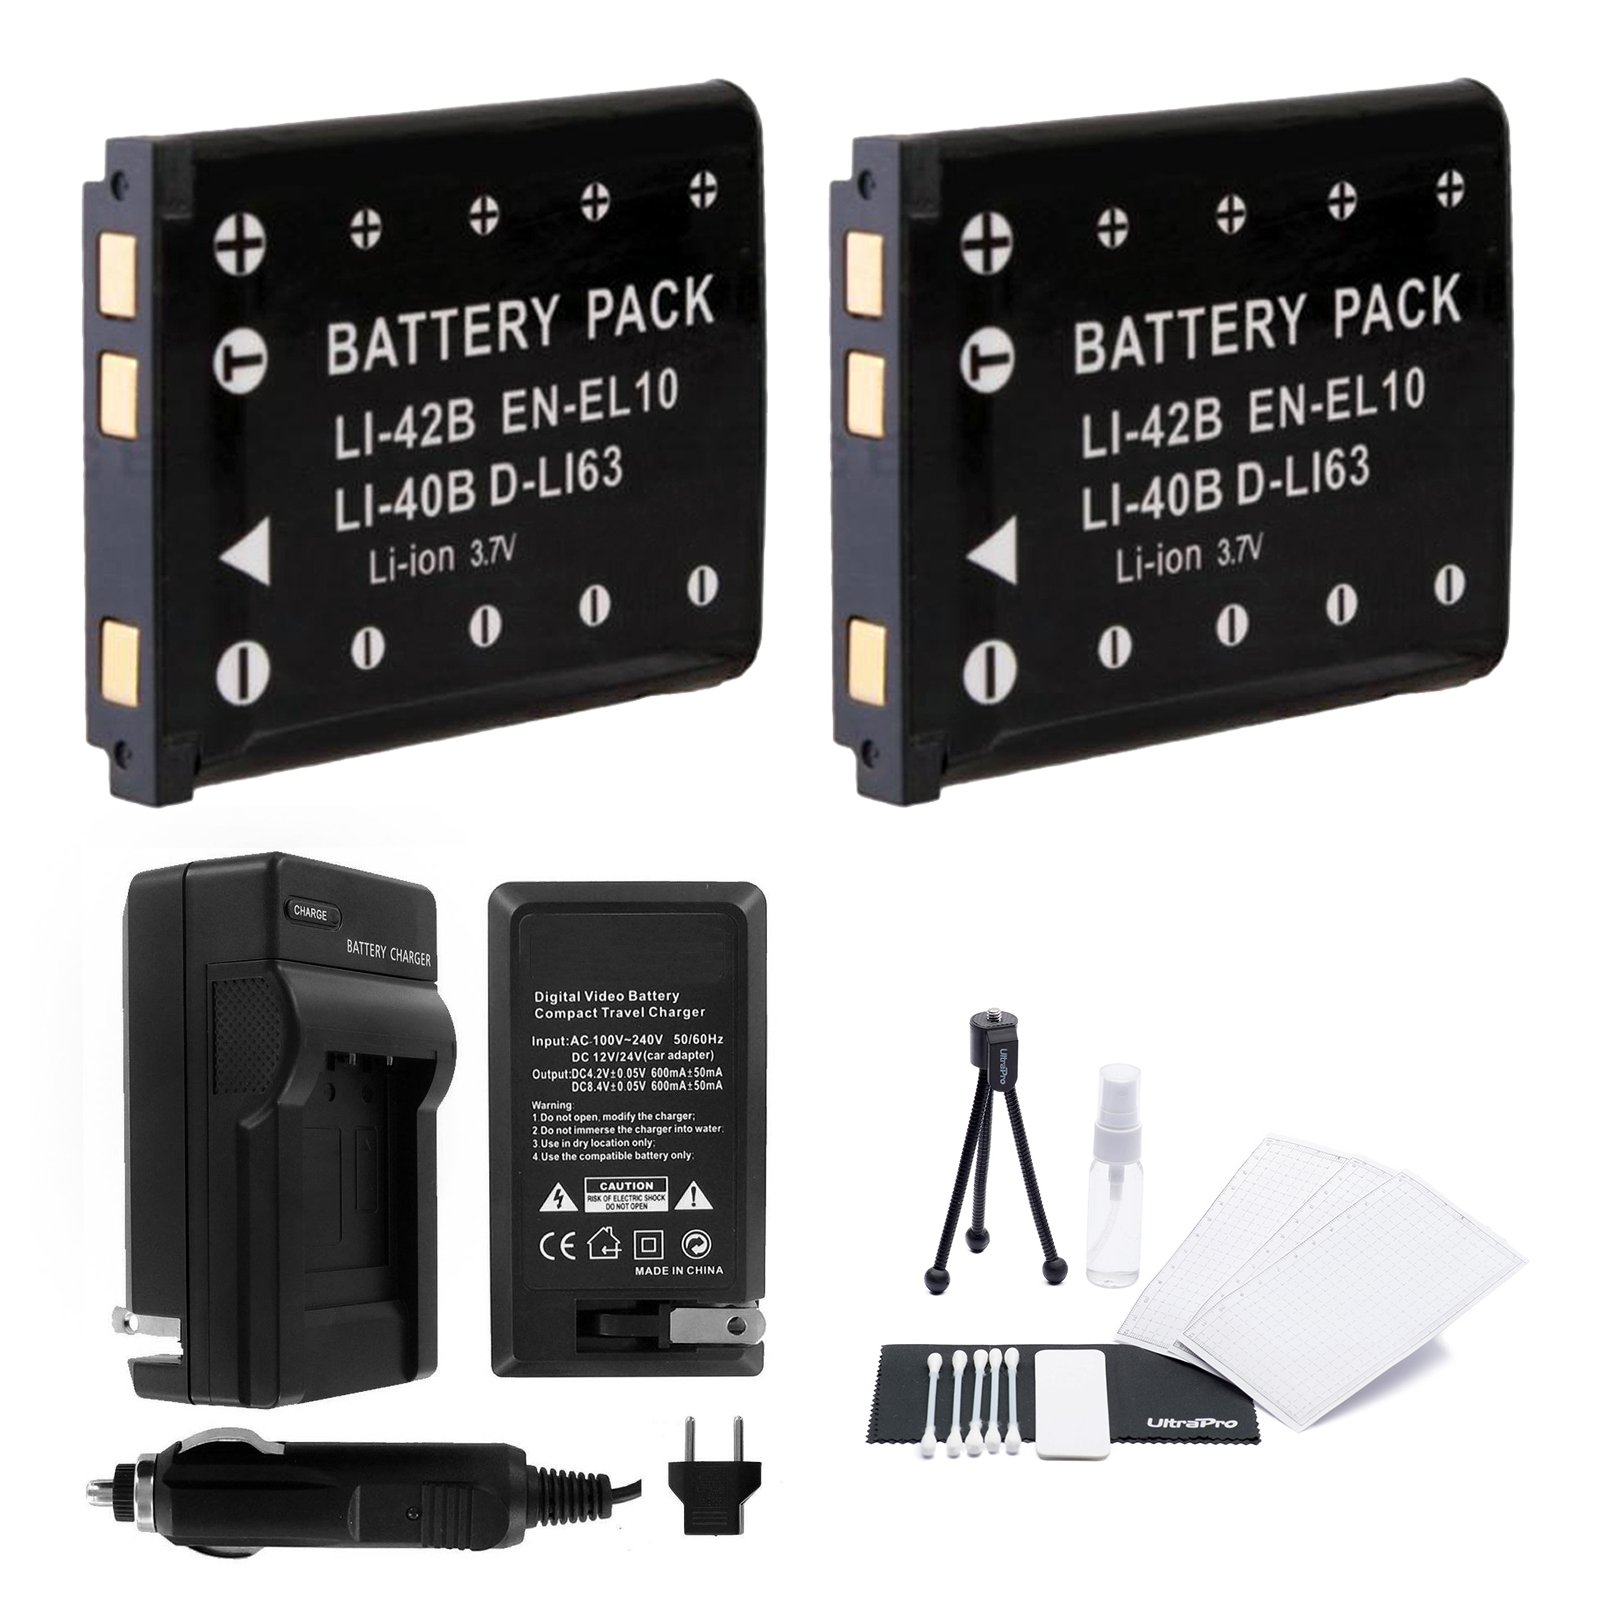 EN-EL10 Battery 2-Pack Bundle with Rapid Travel Charger and UltraPro Accessory Kit for Select Nikon Coolpix Cameras